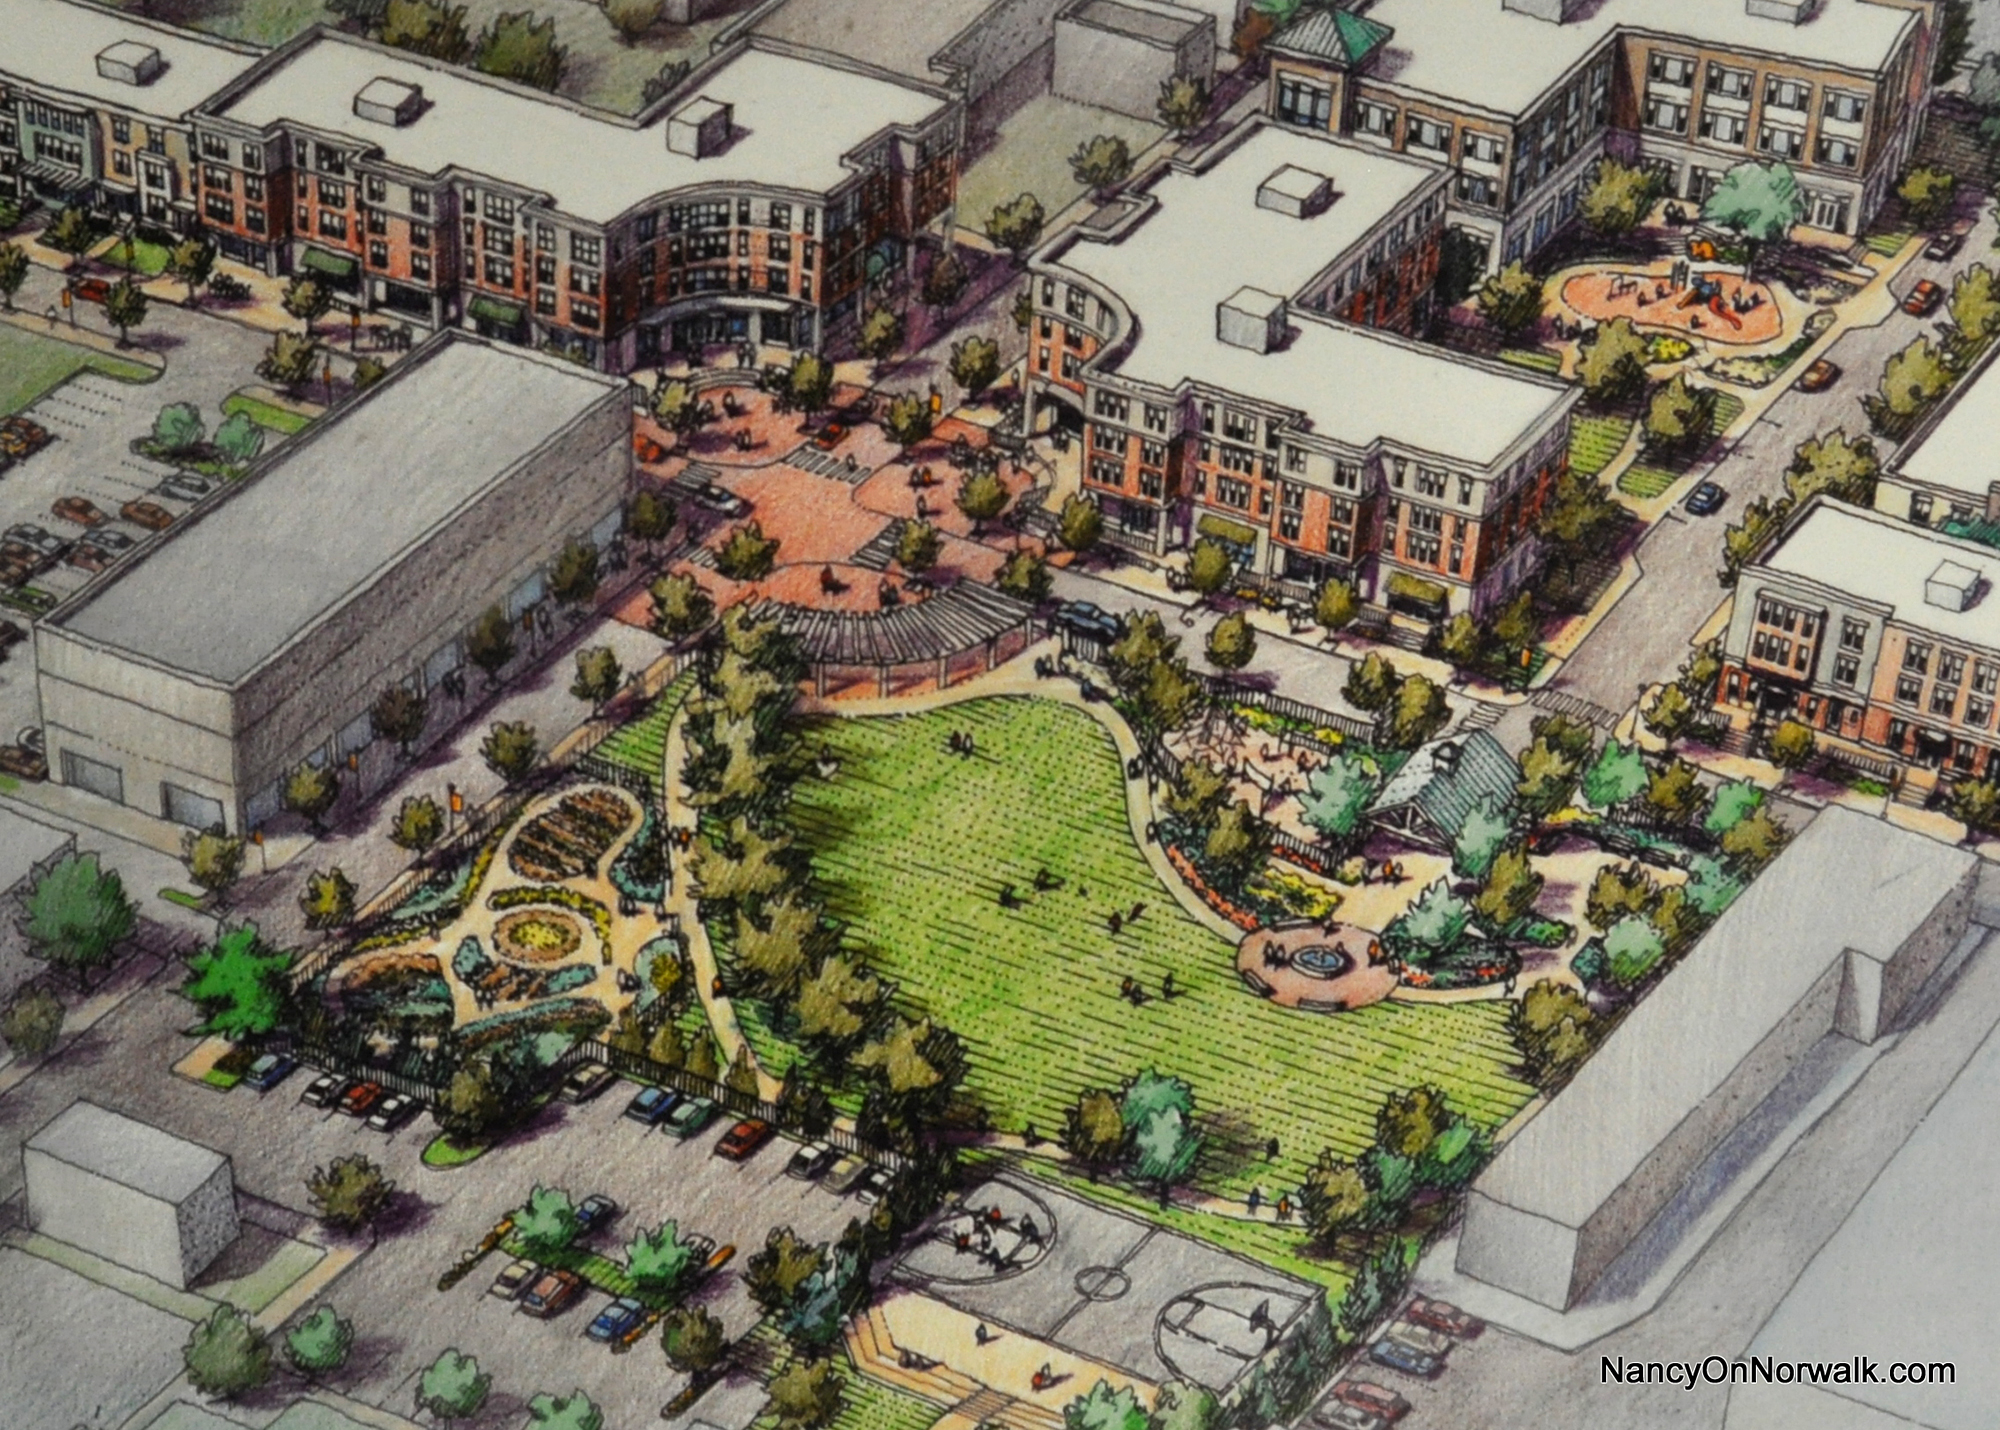 A 2013 artists rendering of the washington village design